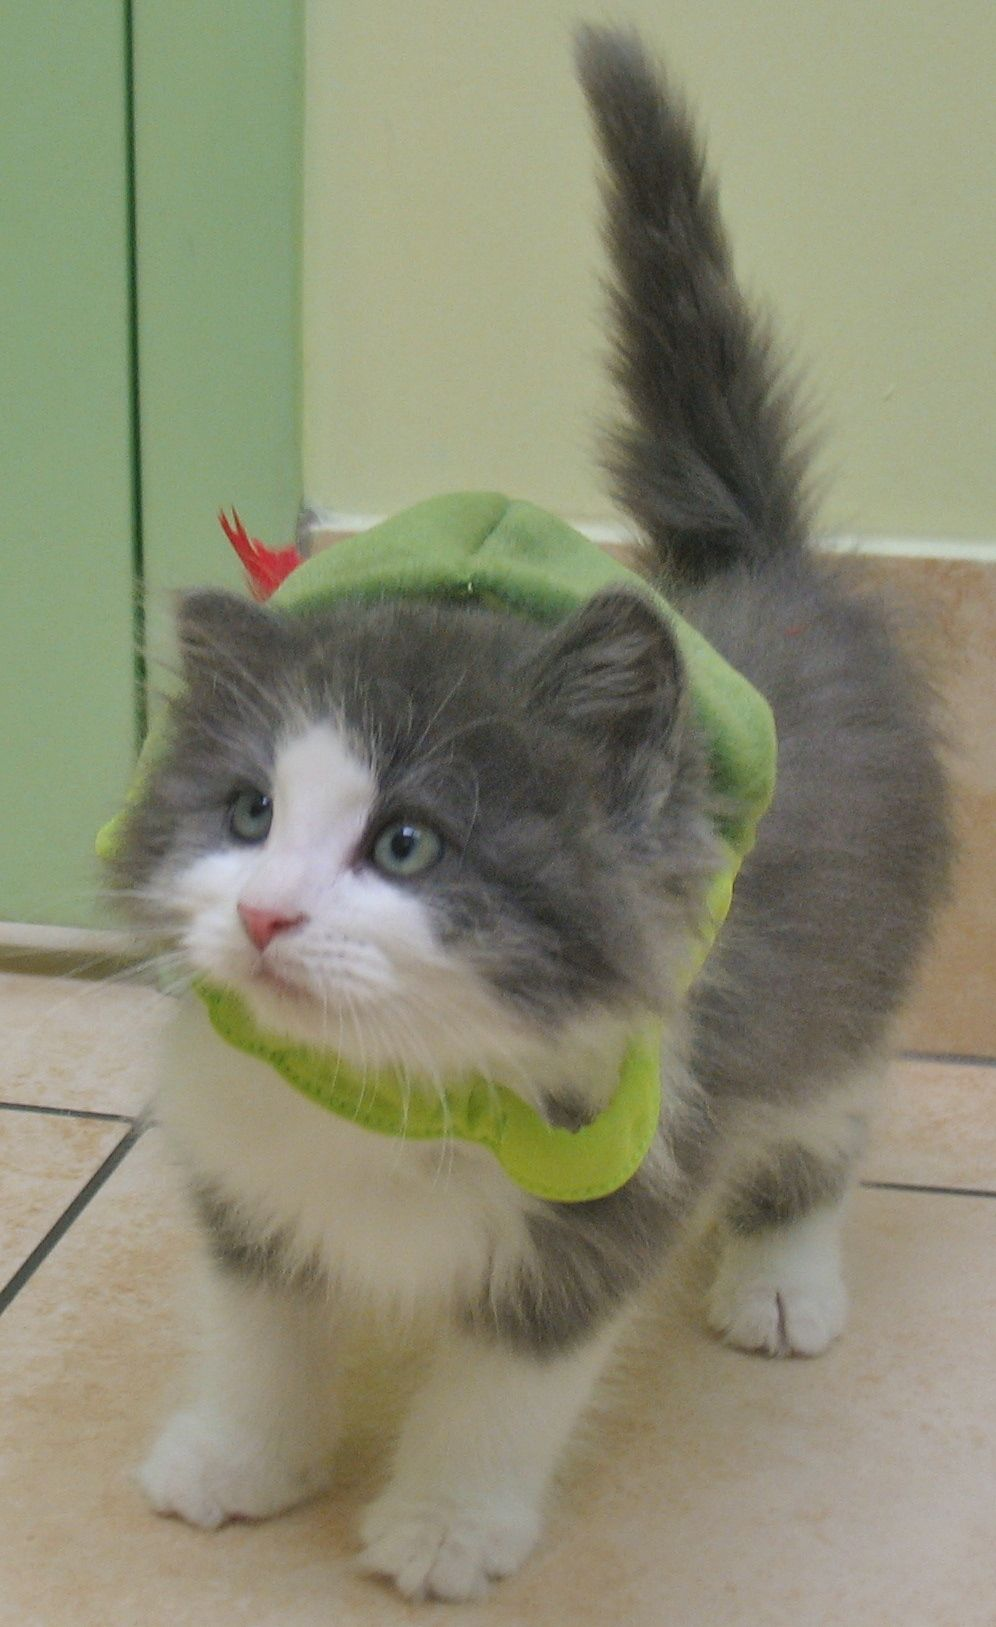 i don't know what i have on my head. Kitten adoption